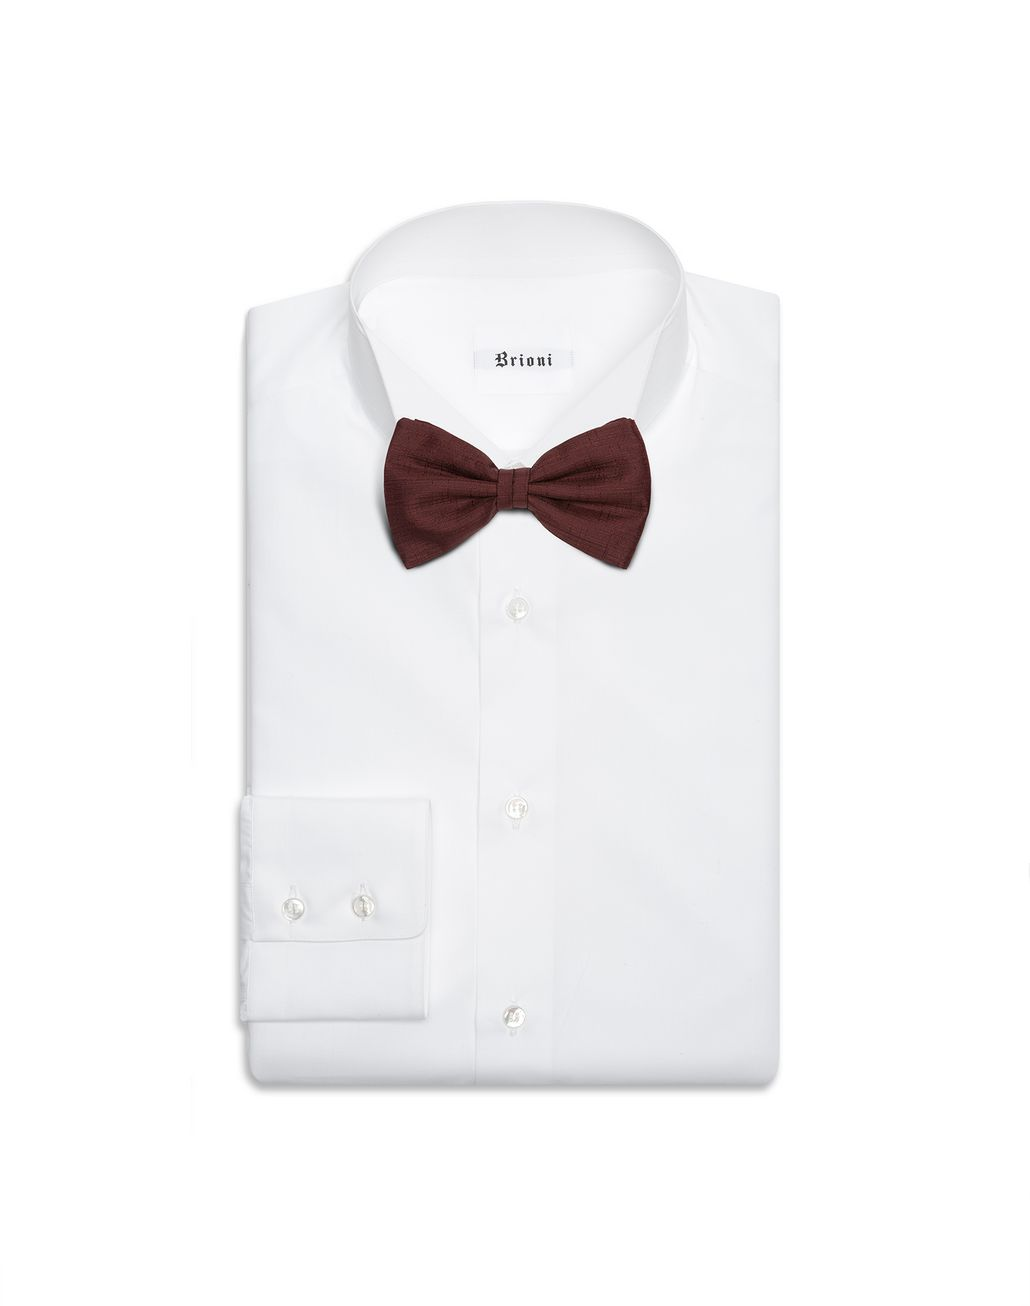 BRIONI Burgundy Bow Tie Bow Ties & Cummerbunds Man r